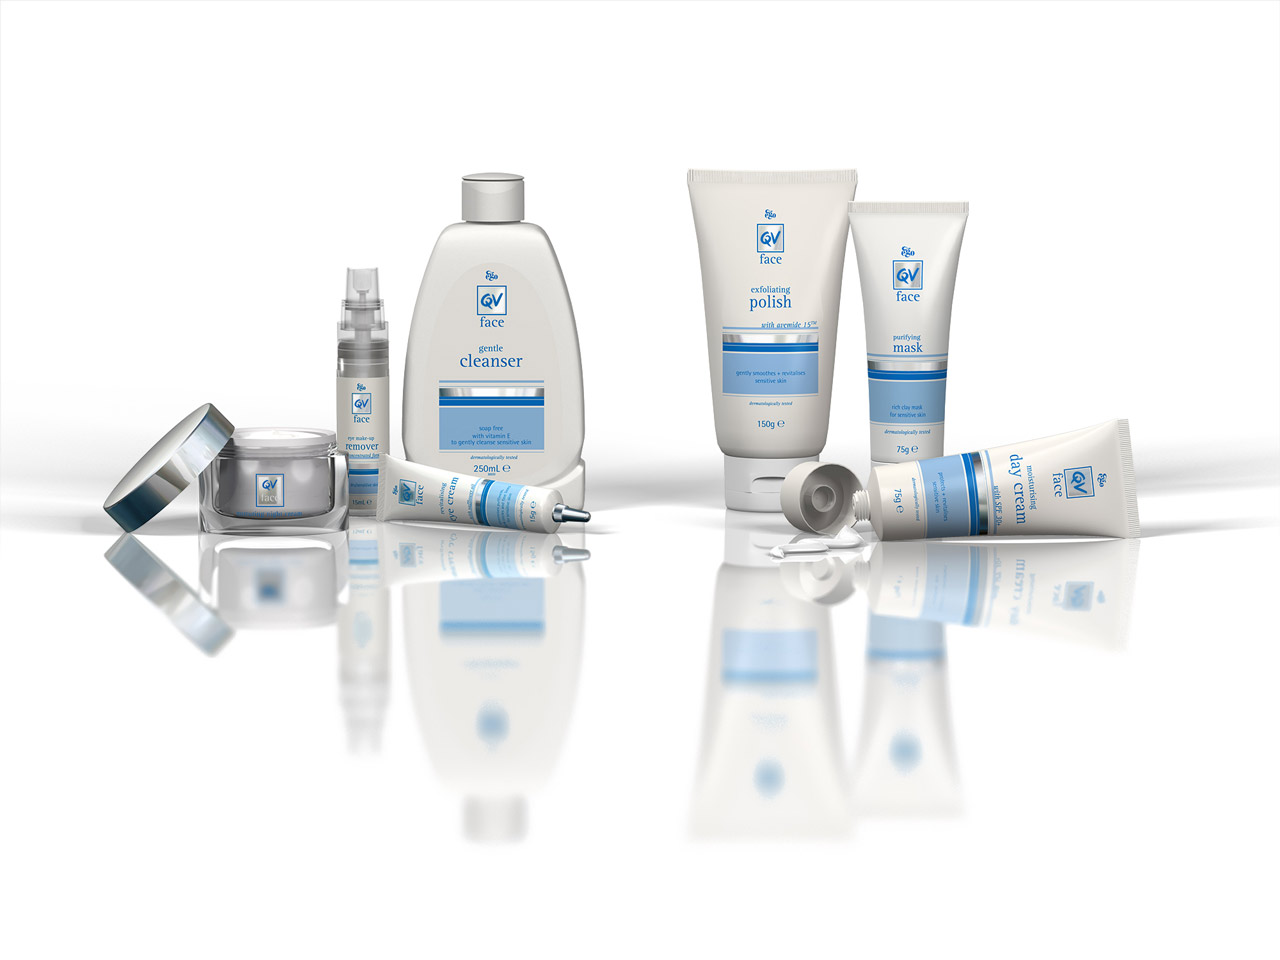 QV Skincare - 3D Product Renders